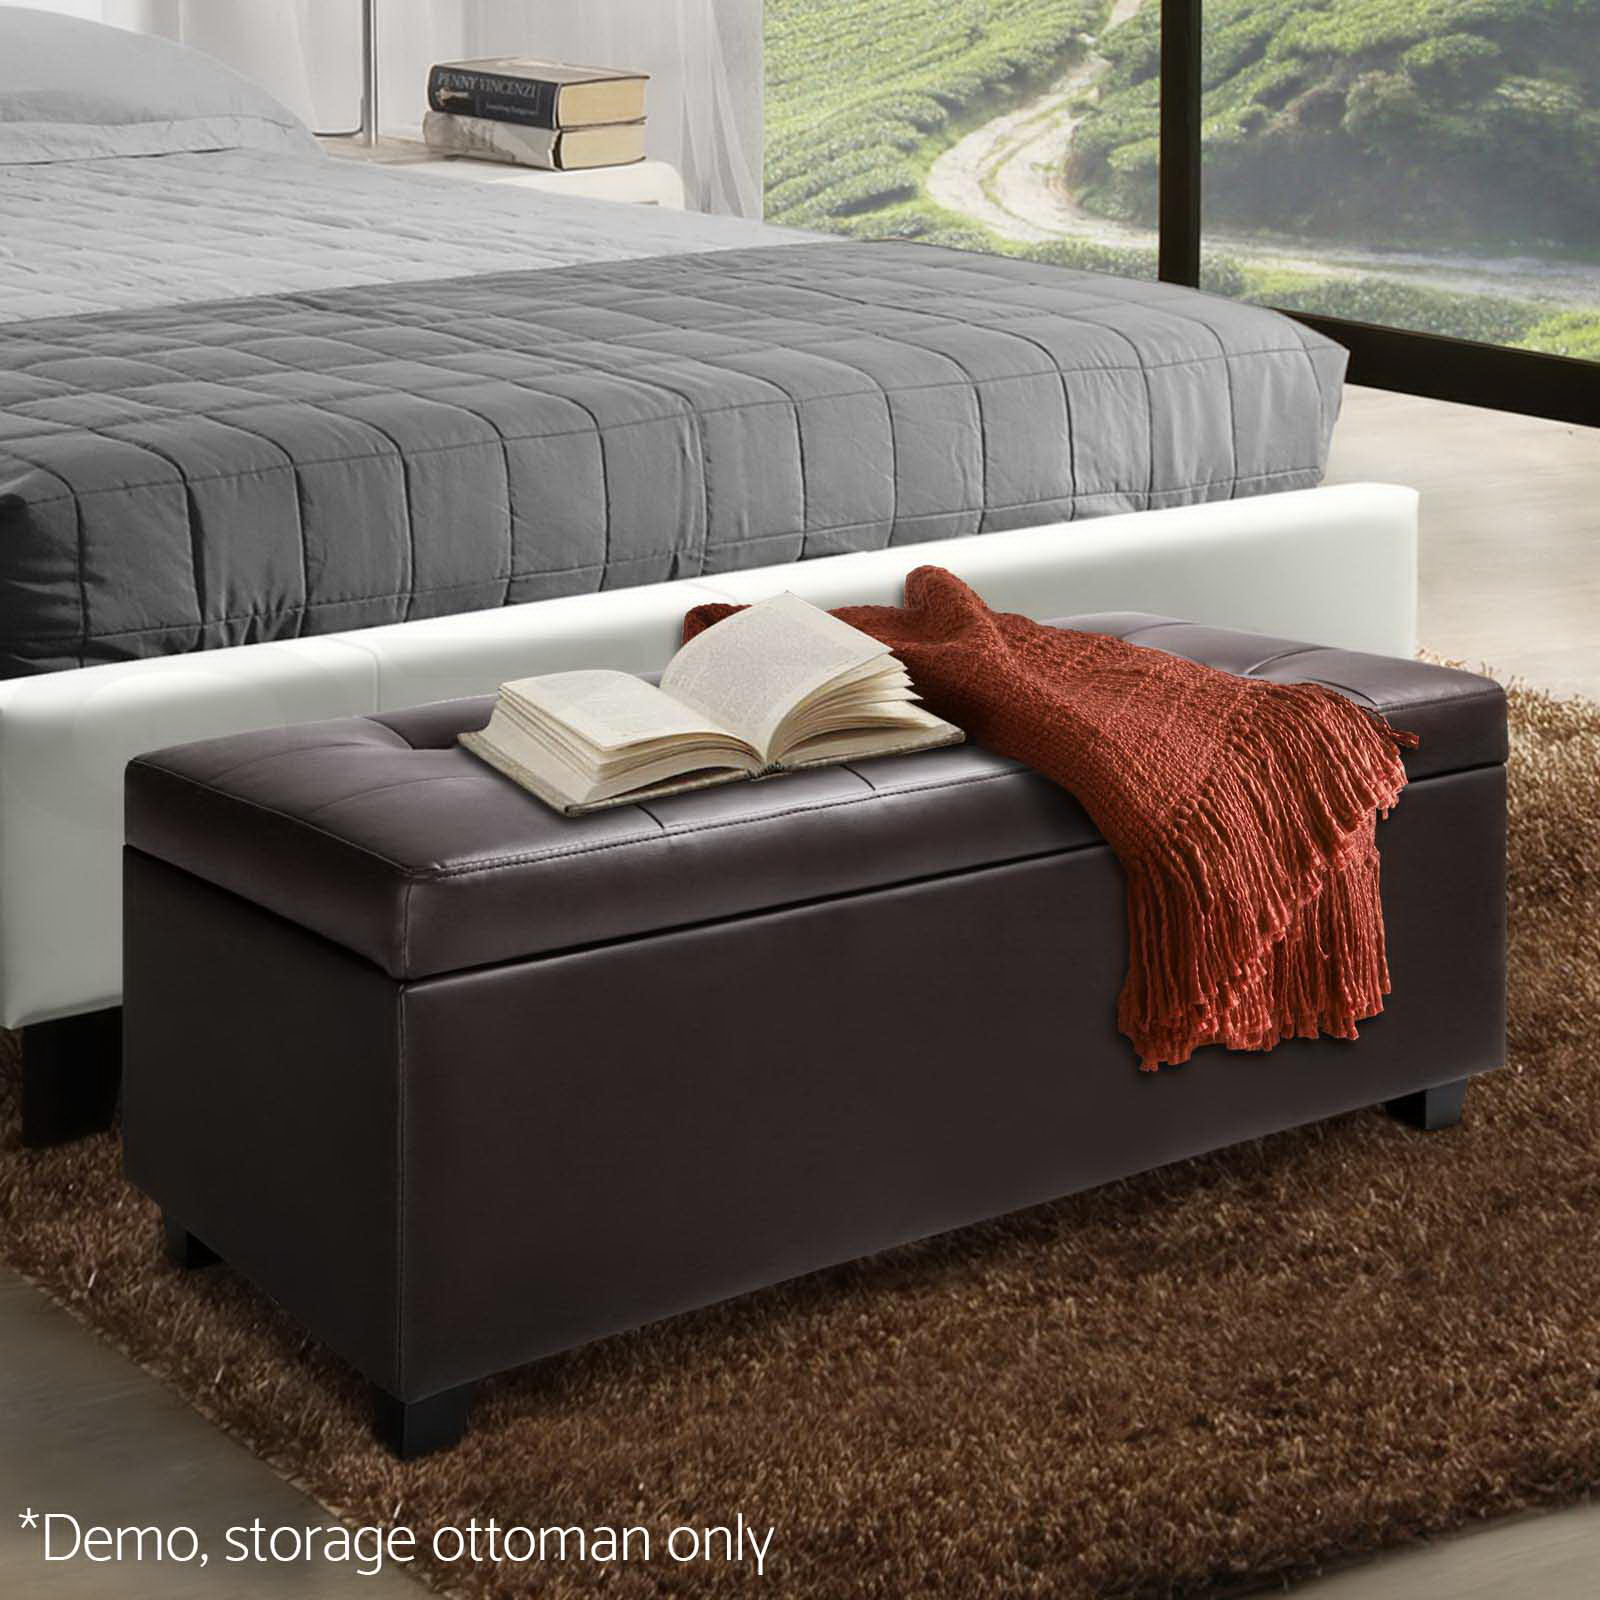 Blanket-Box-Storage-Ottoman-PU-Leather-Fabric-Chest-Toy-Foot-Stool-Bed